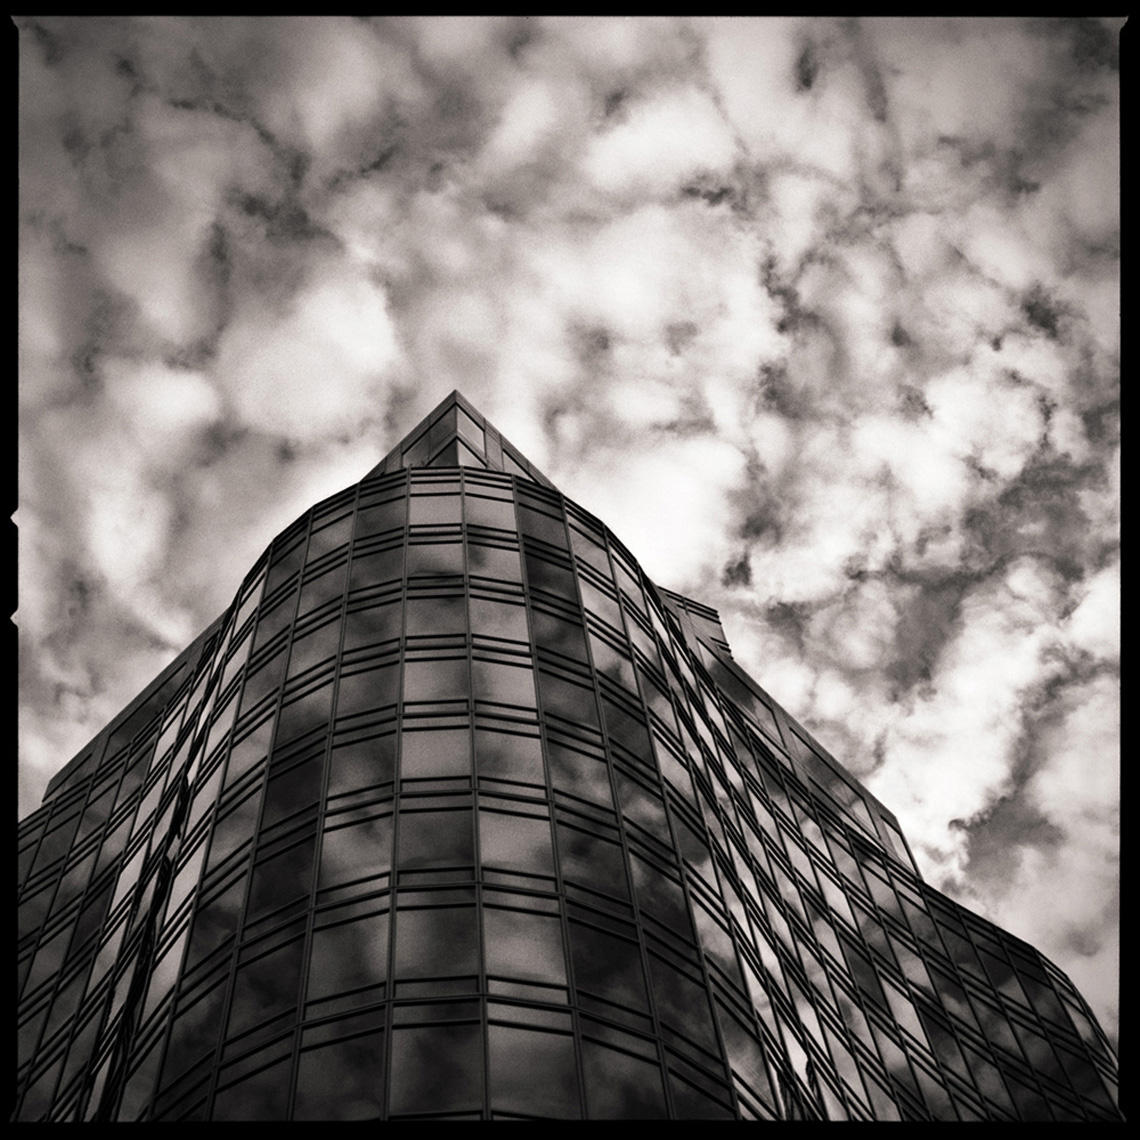 Sean Perry Photographs • Astor Place Tower, from the series Monolith